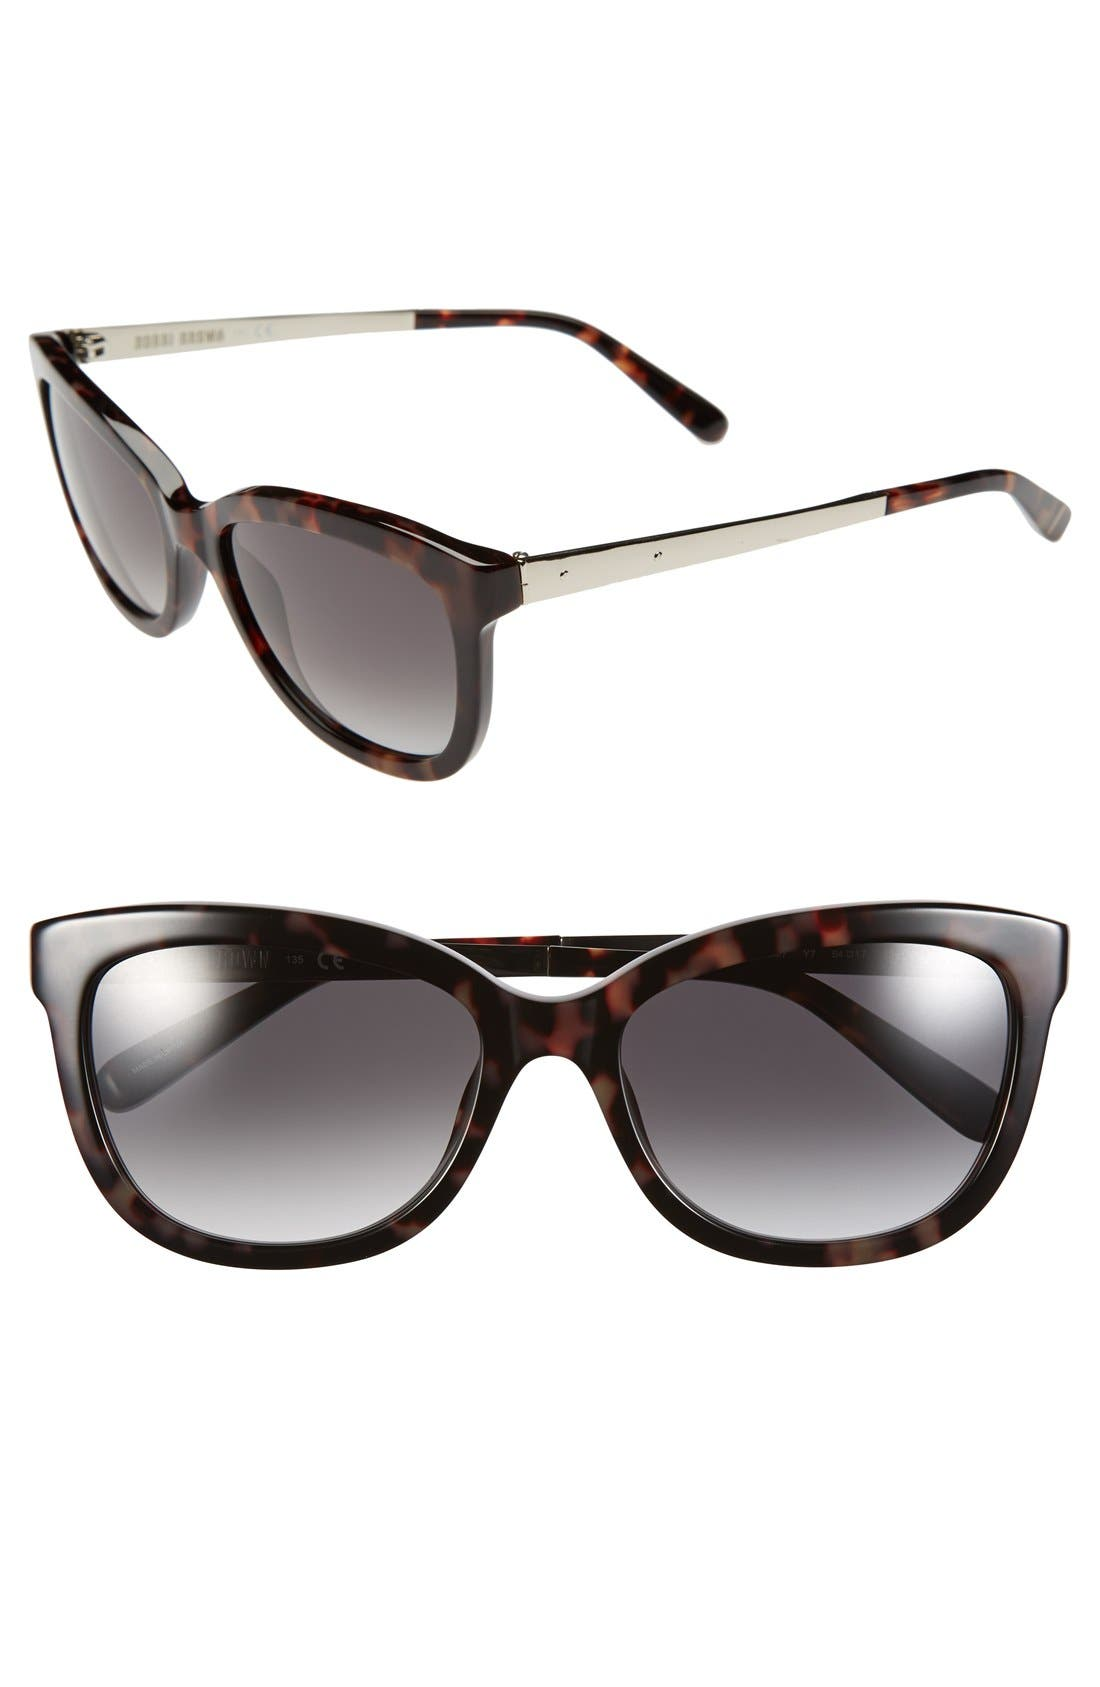 Main Image - Bobbi Brown 'The Stella' 54mm Sunglasses